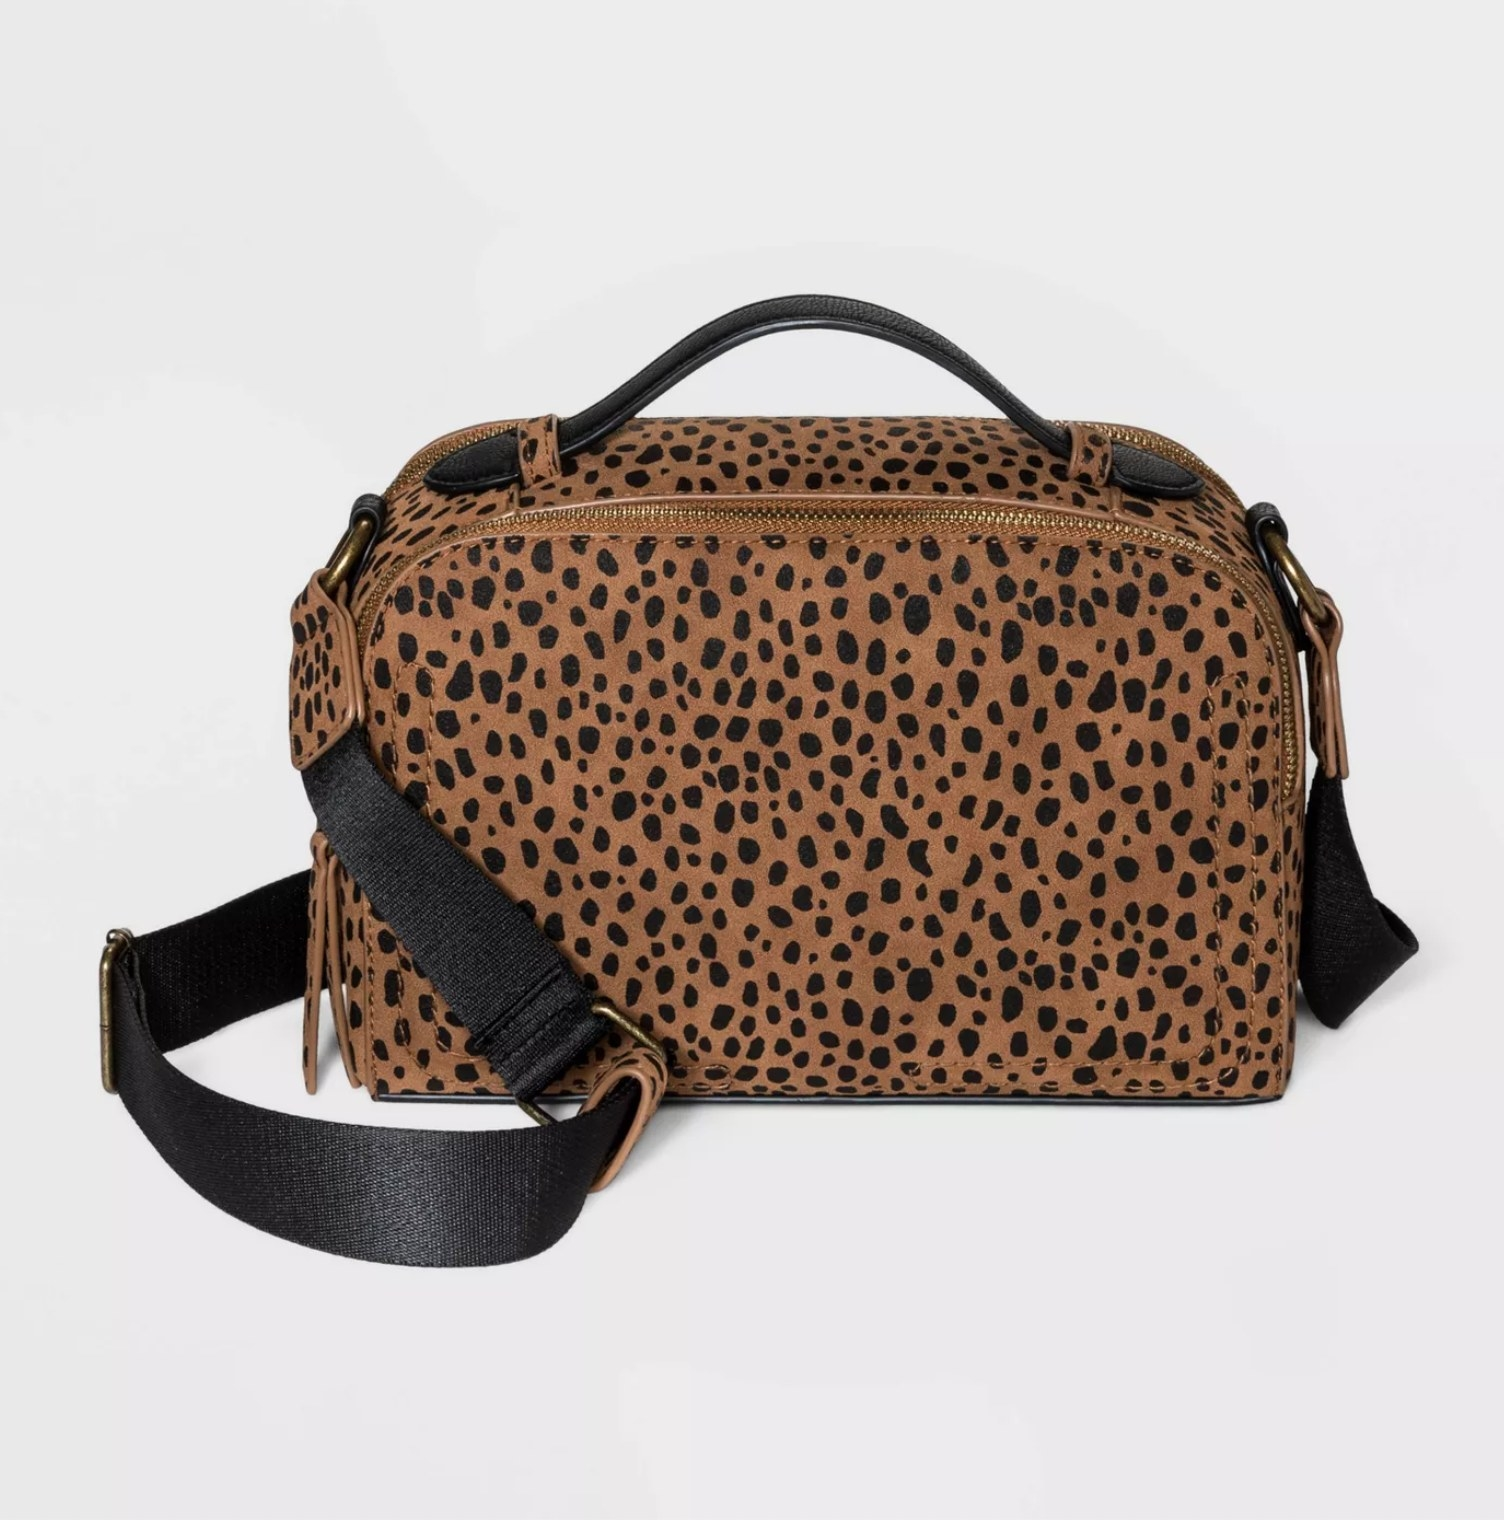 The bag in brown with black polka-dots